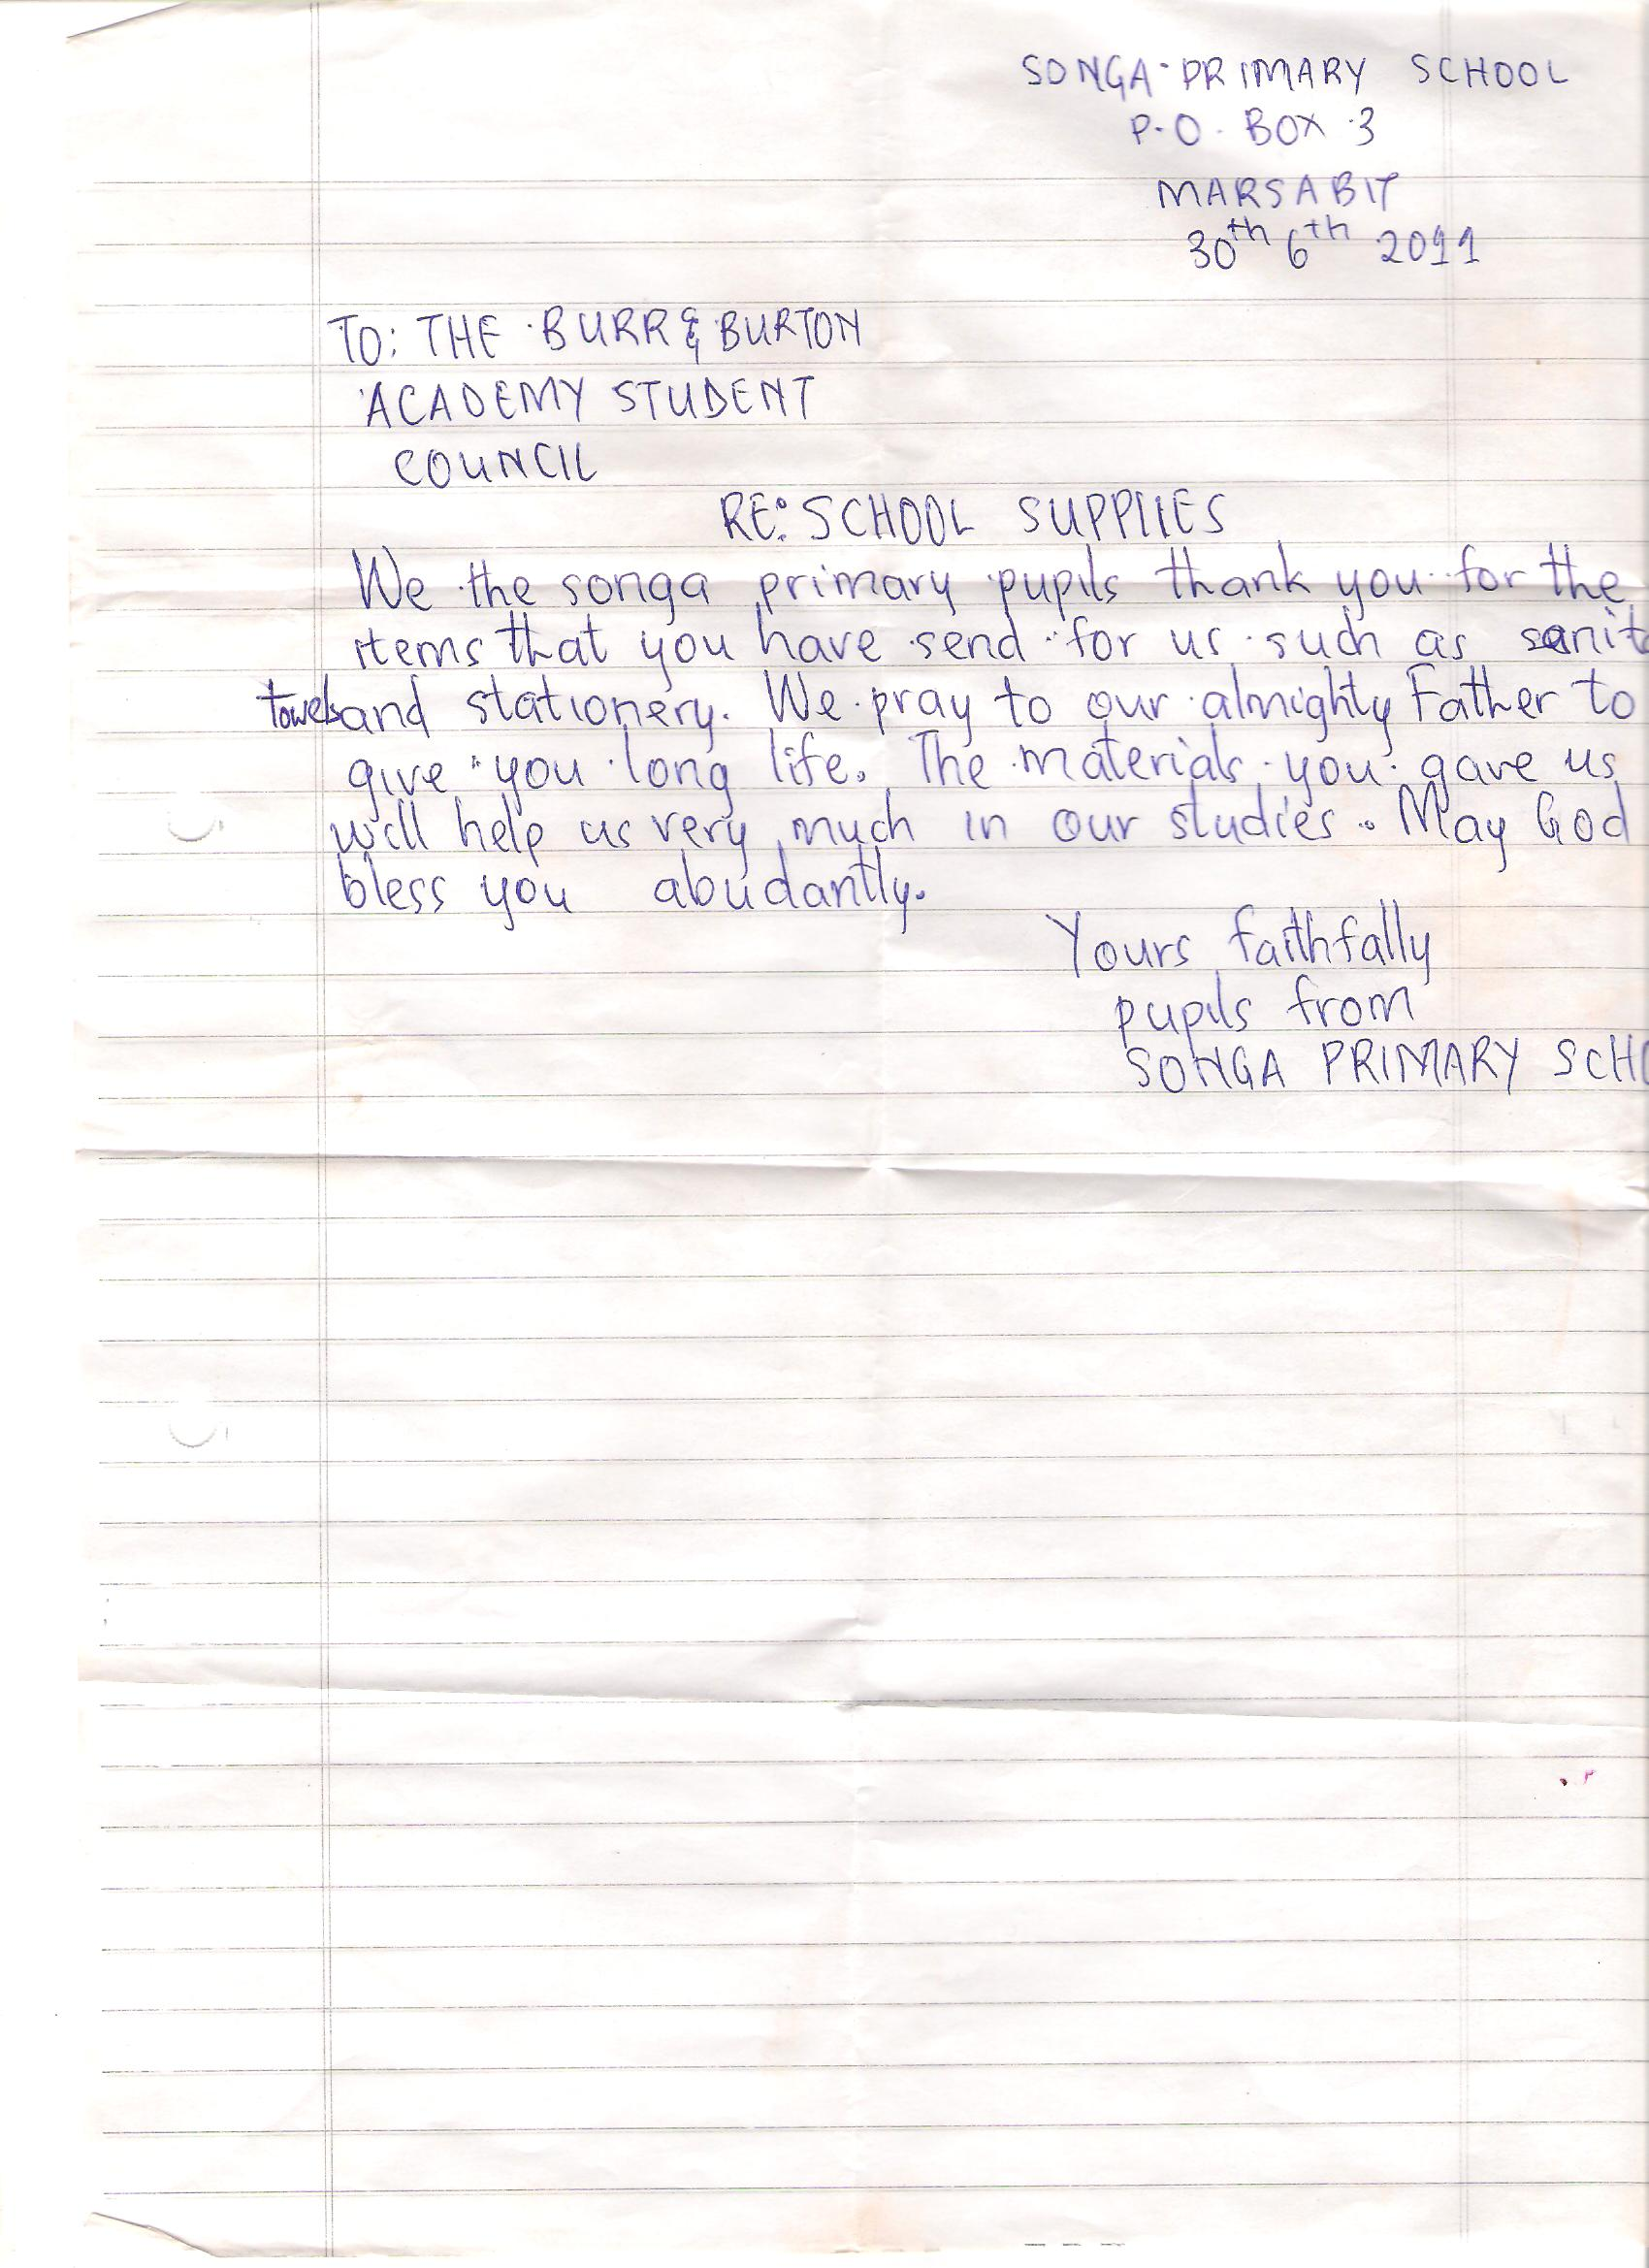 Letter to Burr and Burton academy.jpg